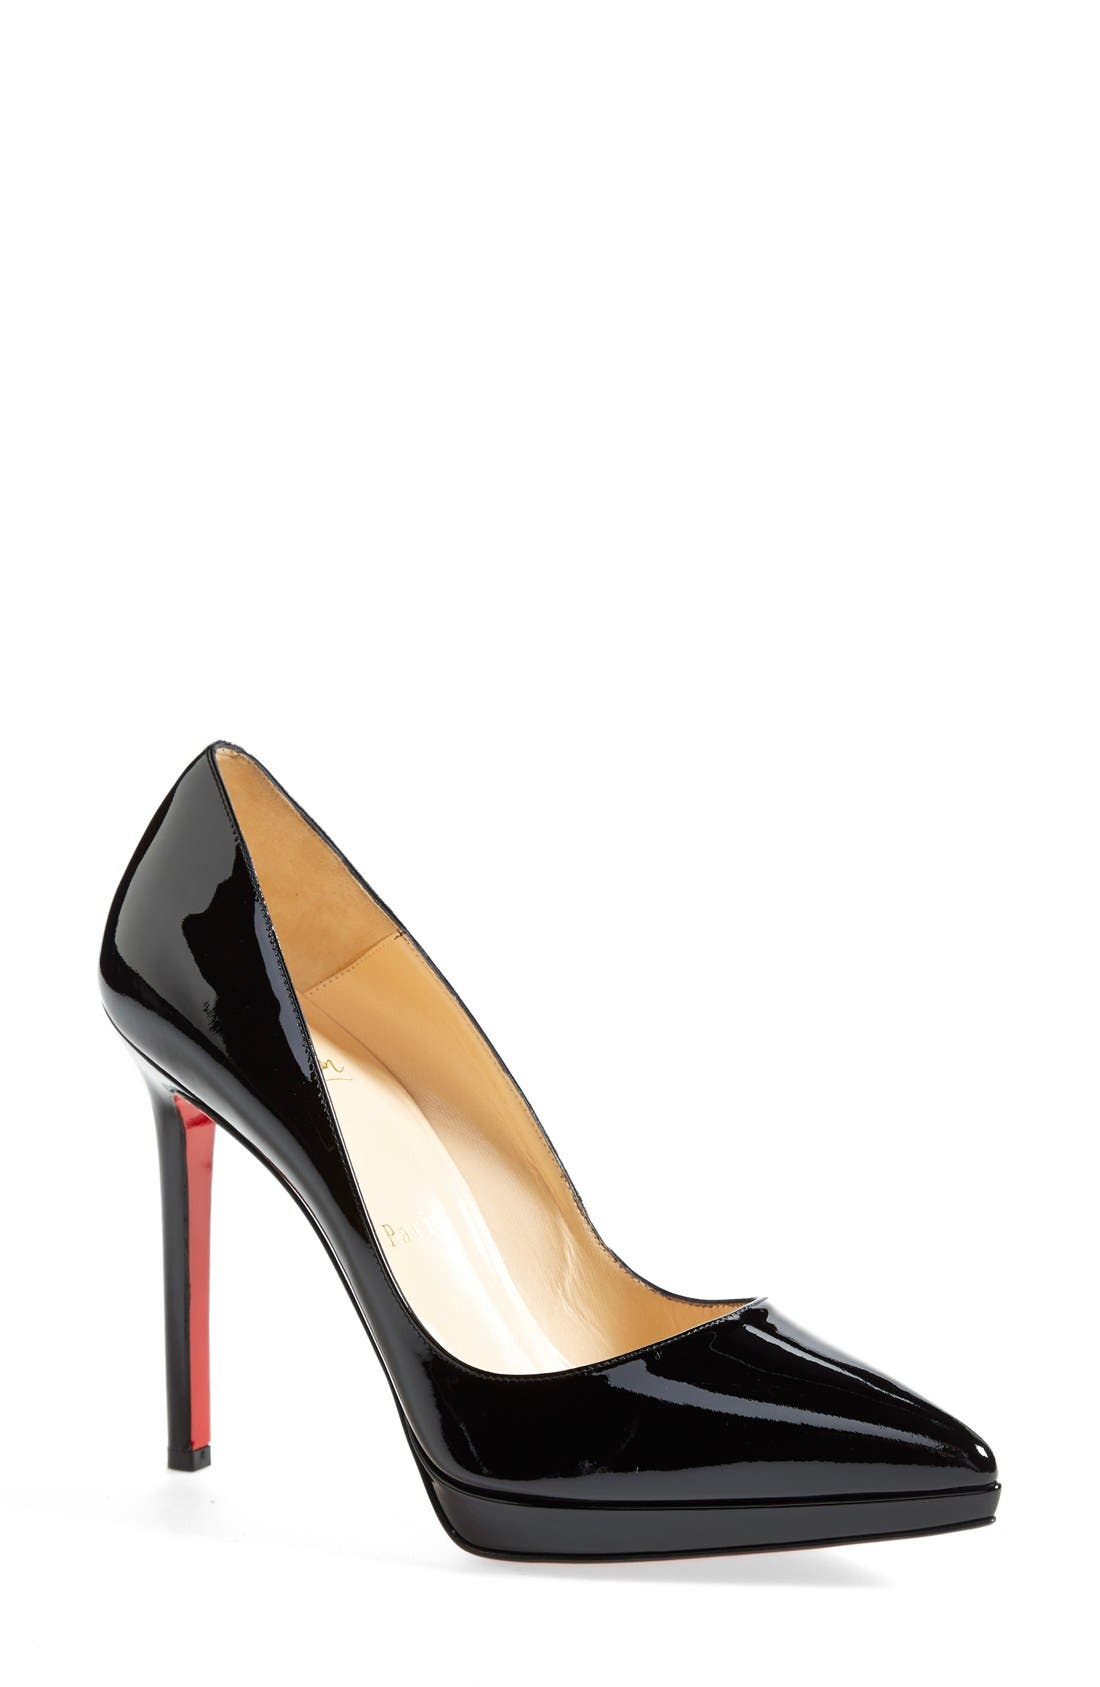 'Pigalle Plato' Pointy Toe Pump,                             Main thumbnail 1, color,